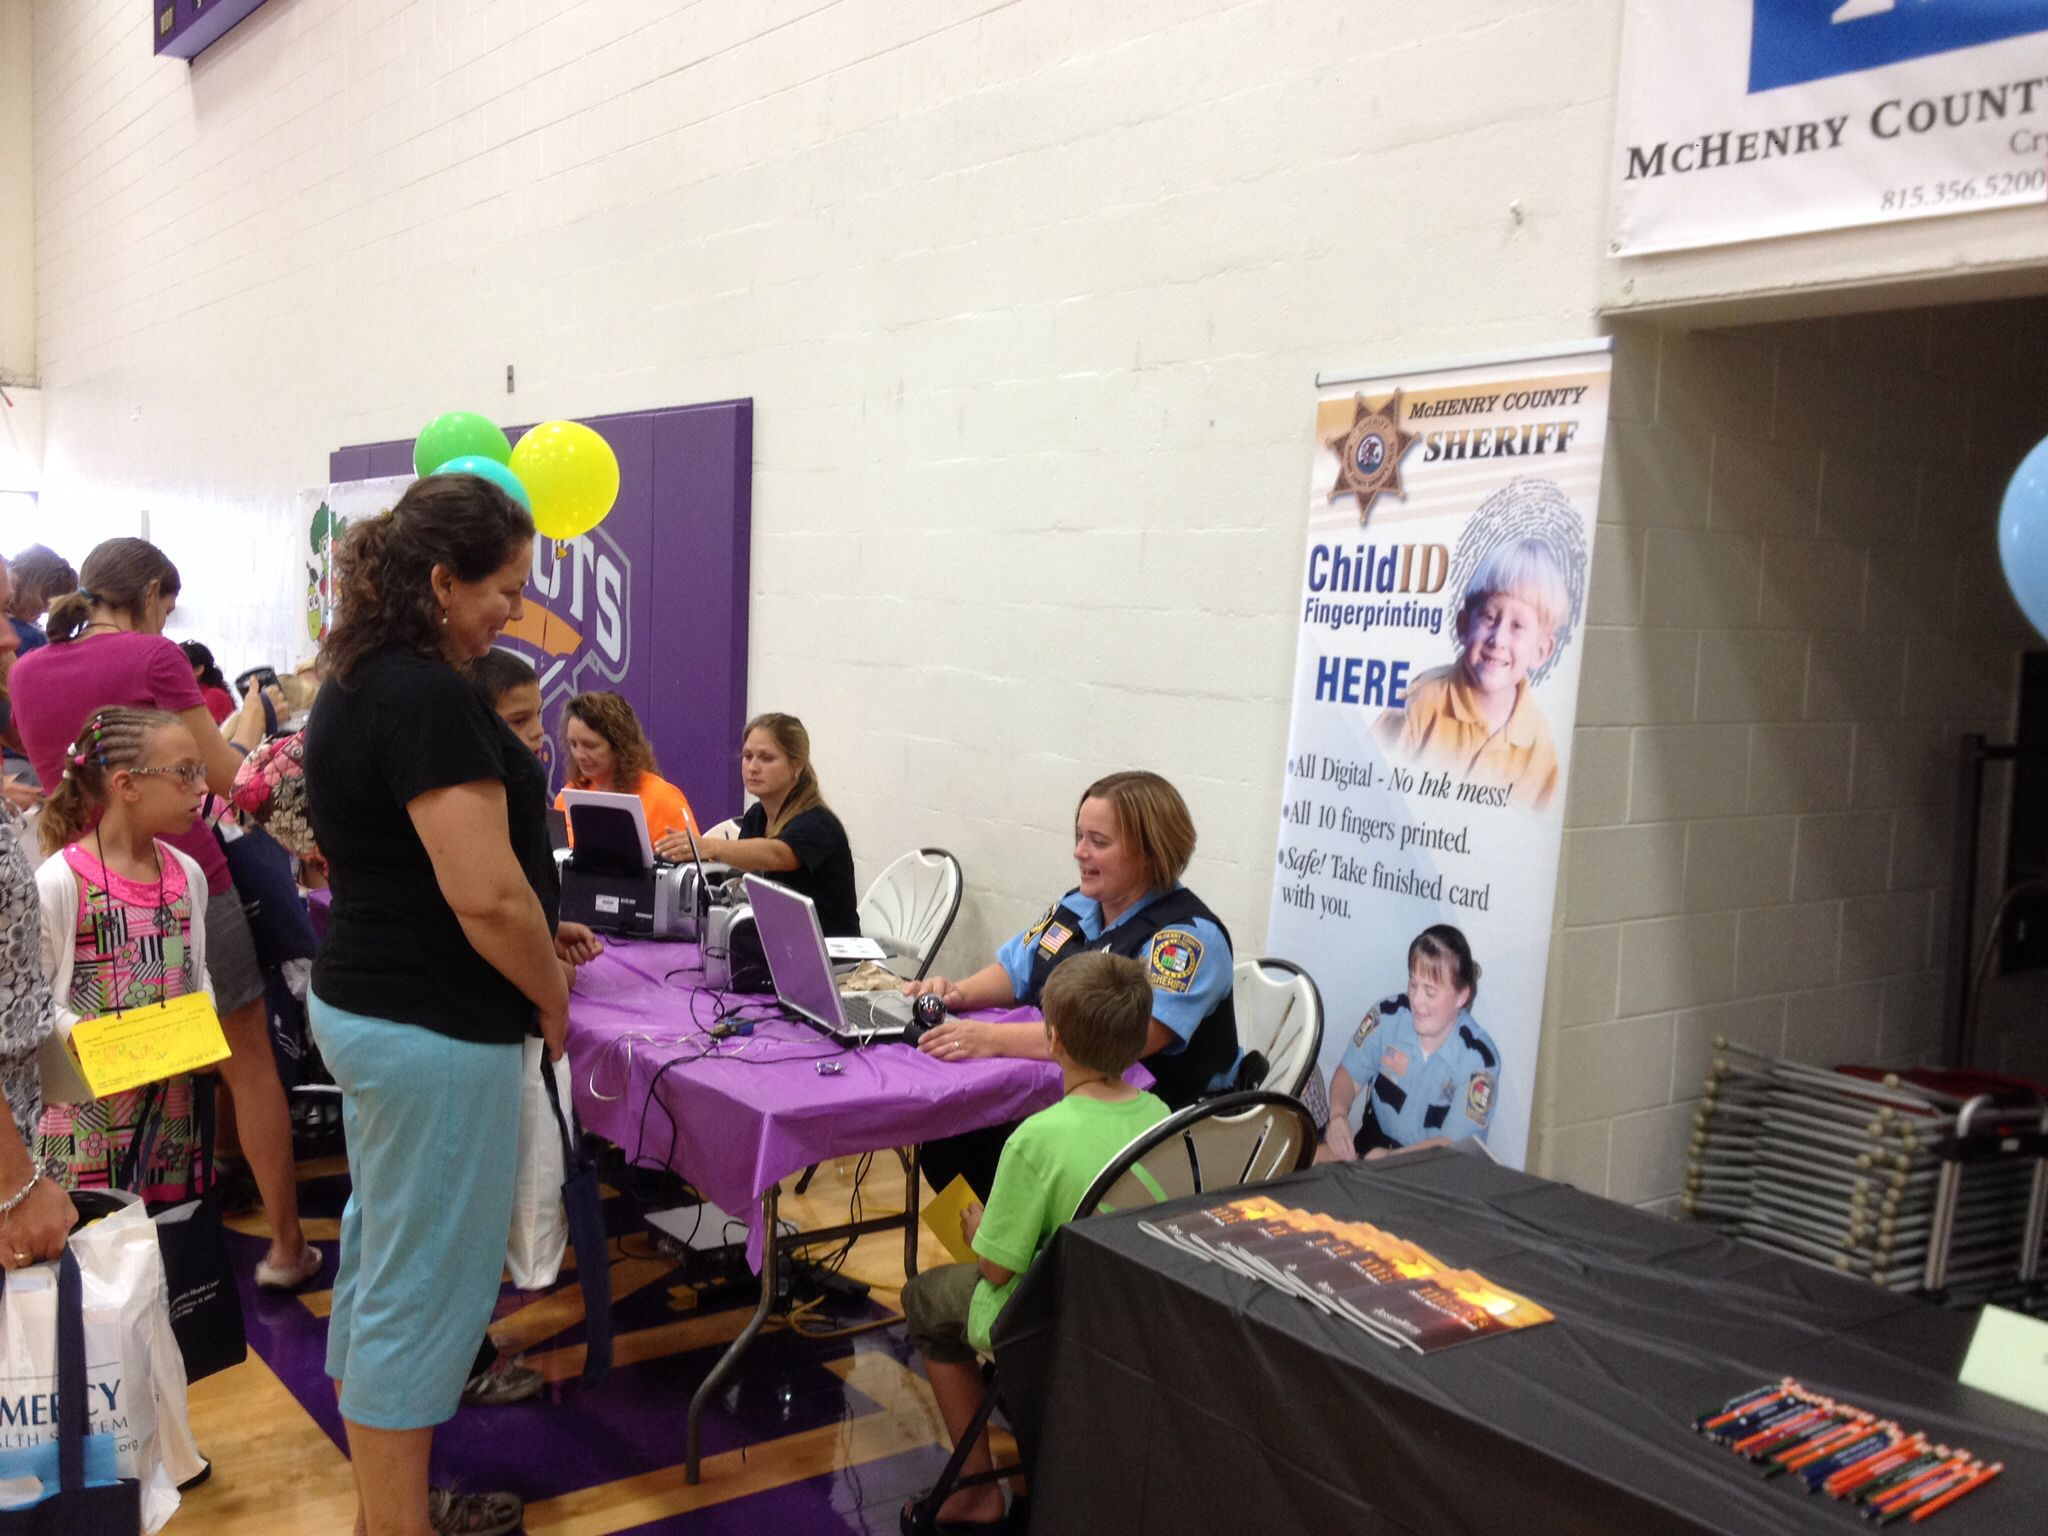 Fingerprinting at the mchenry county childrens health